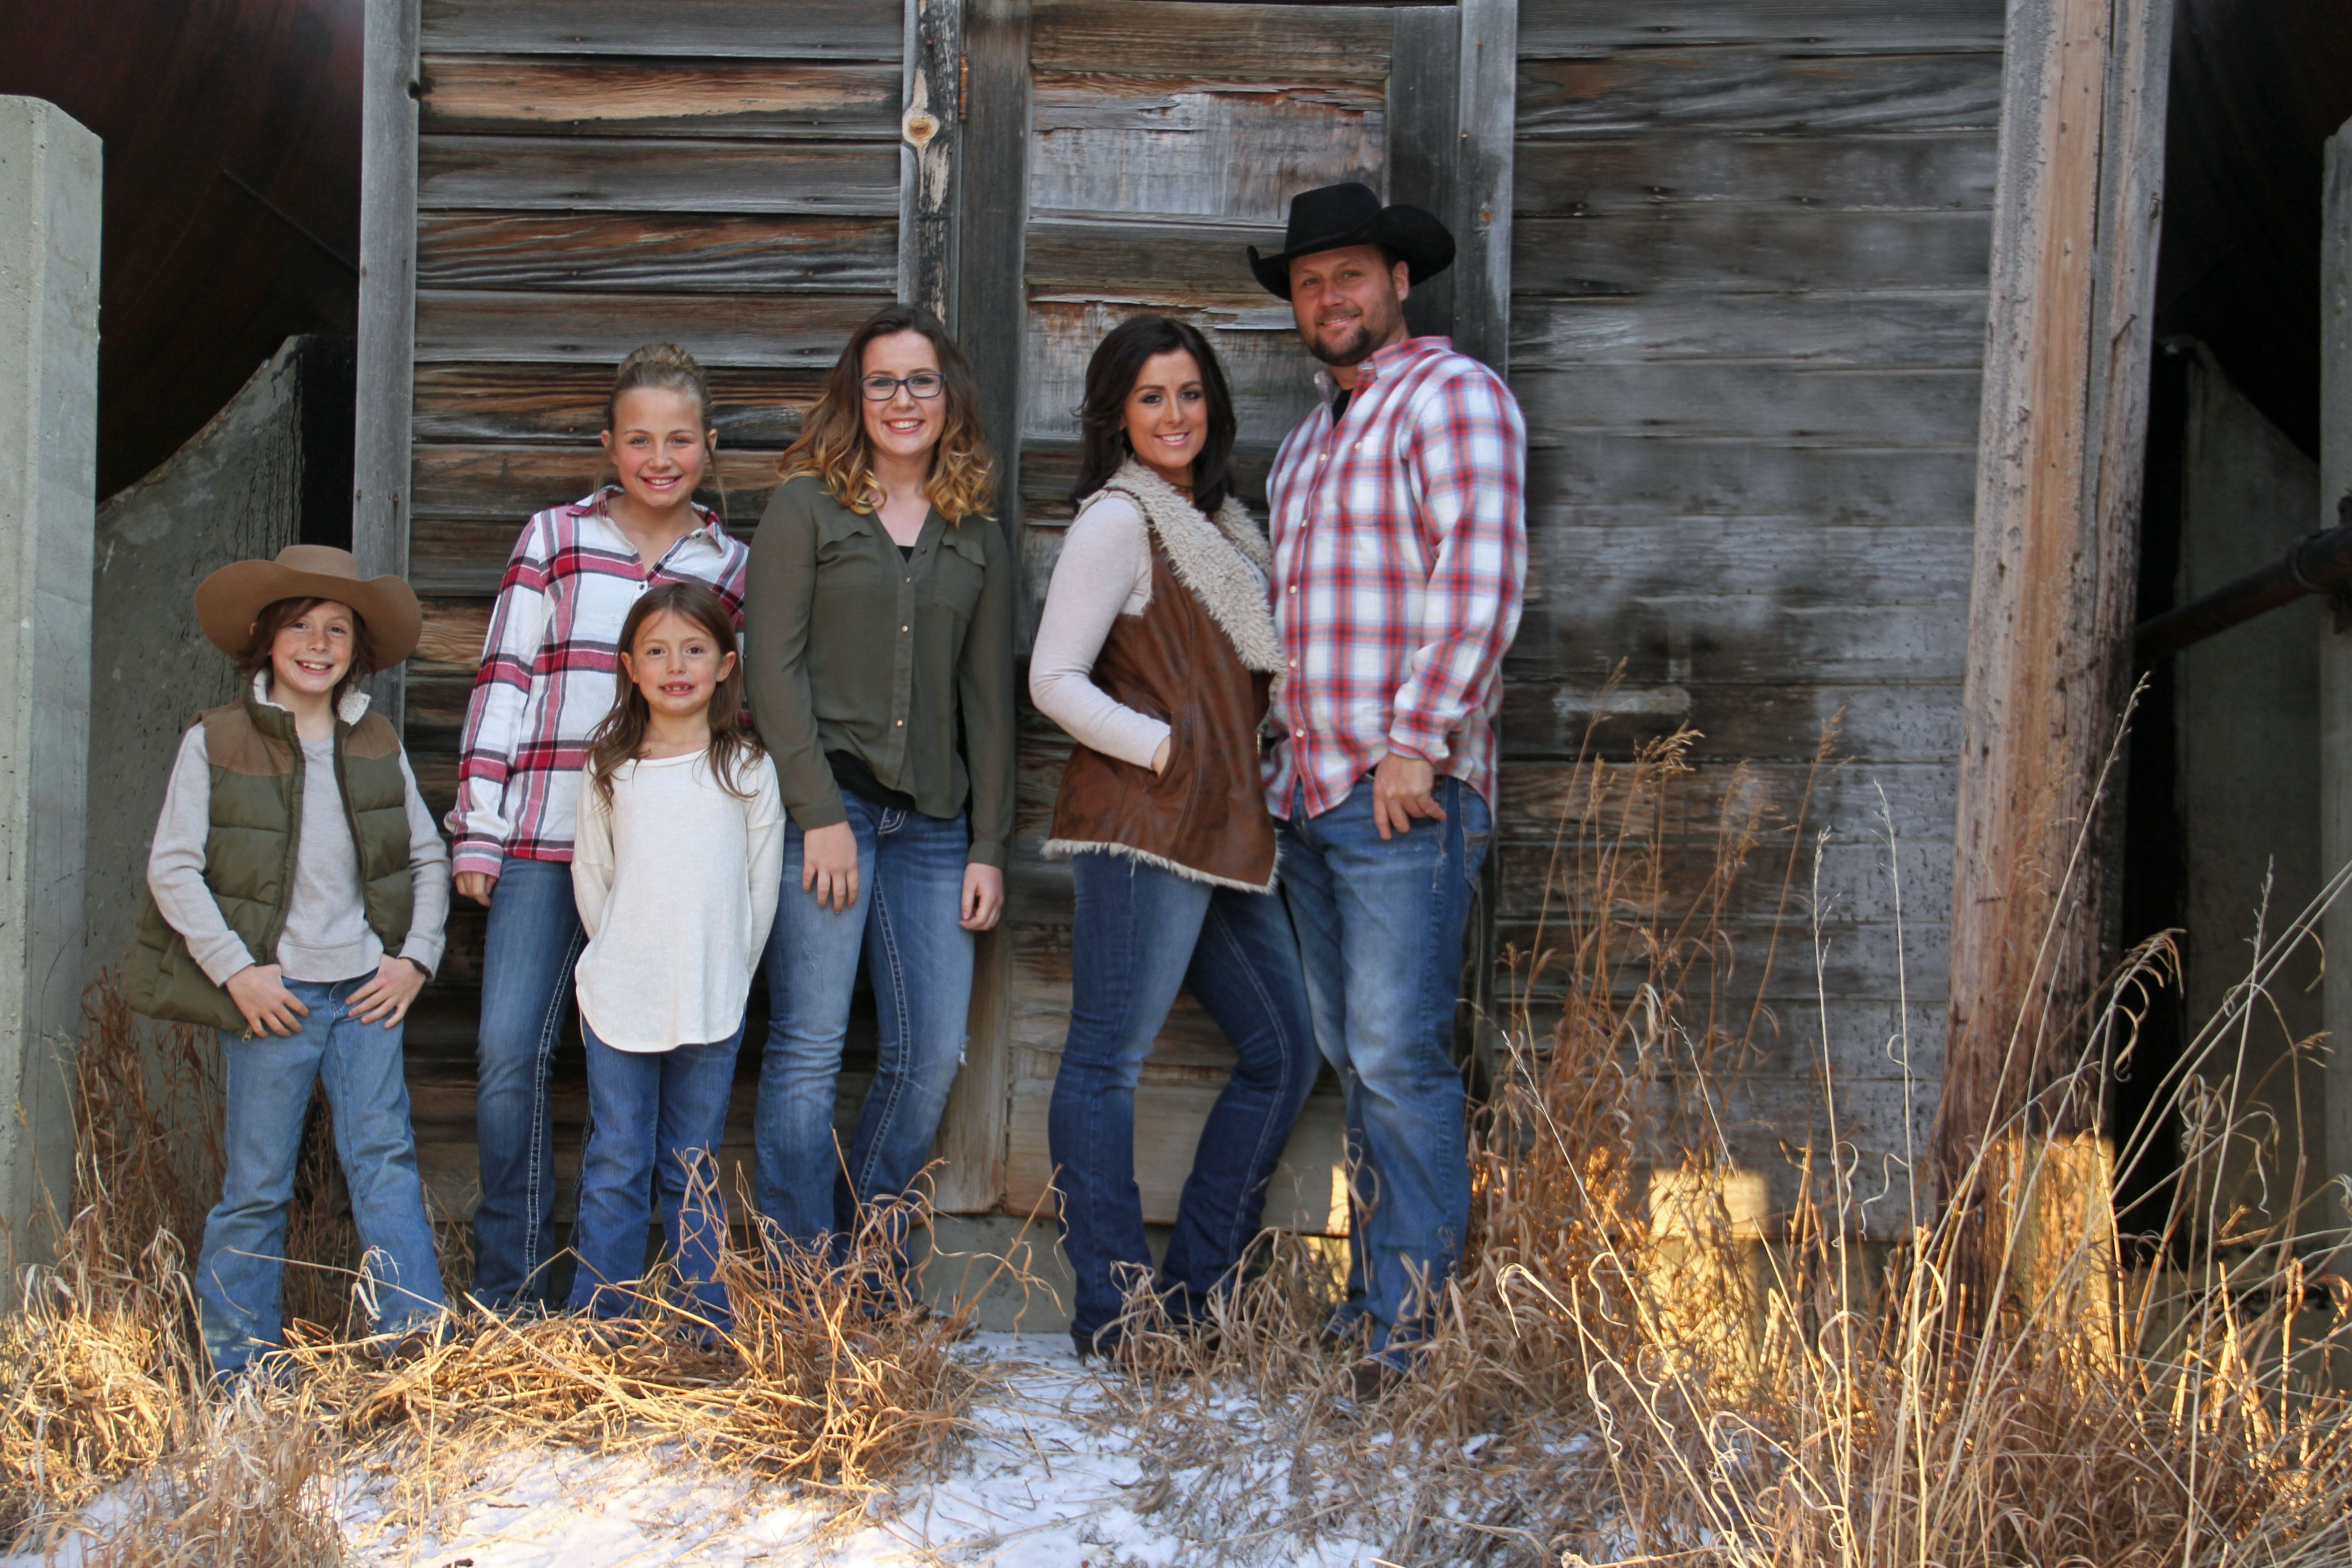 Family Photo Photography Family Pictures Family Poses Outdoor